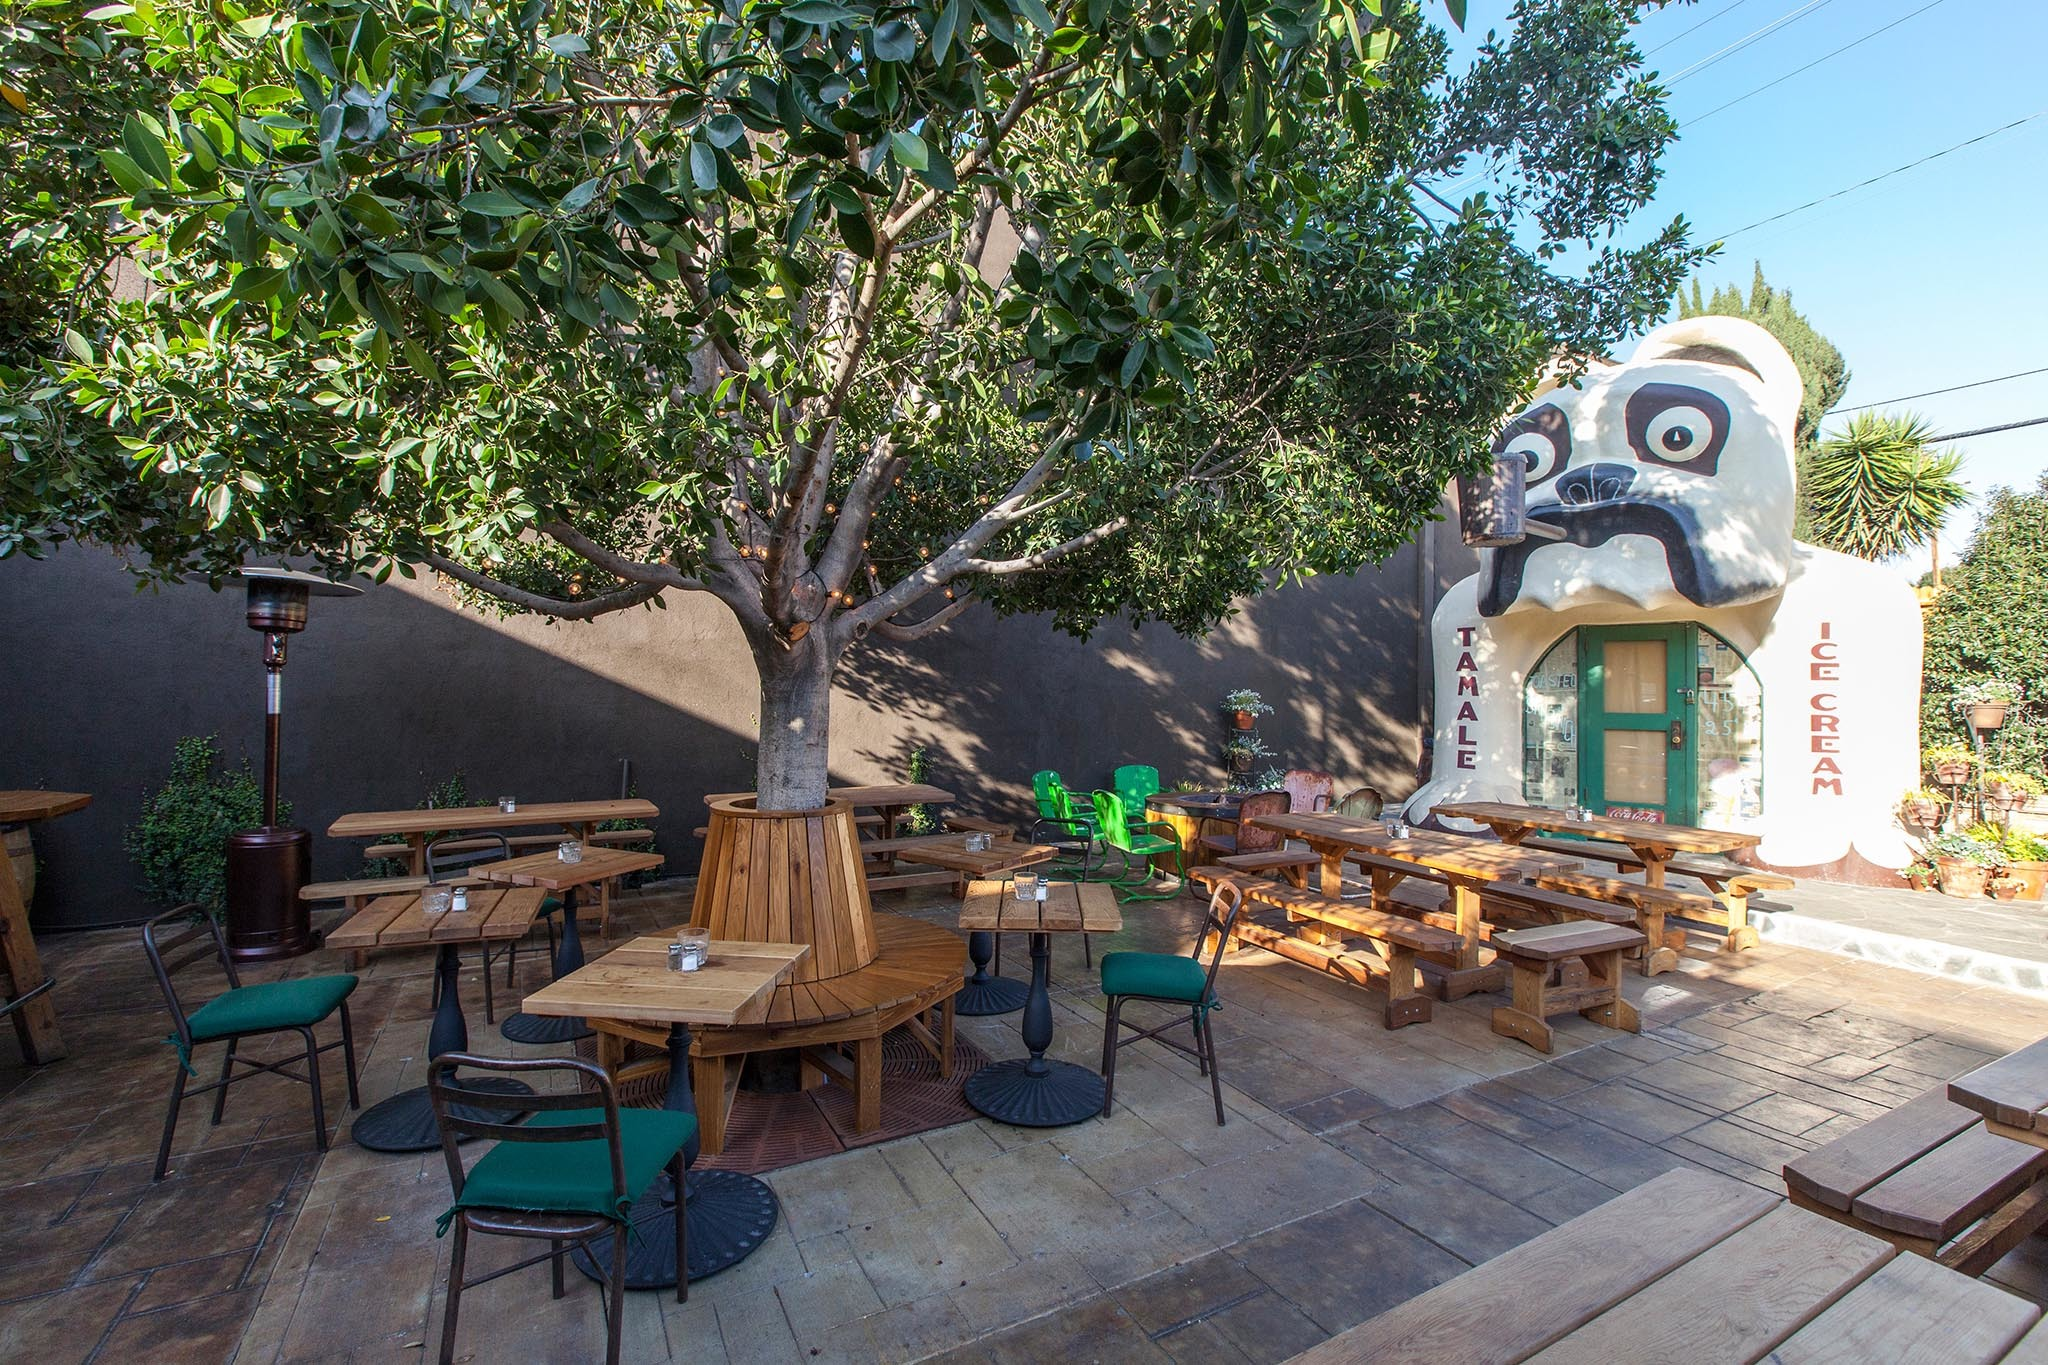 Here's how to spend a perfect day in North Hollywood